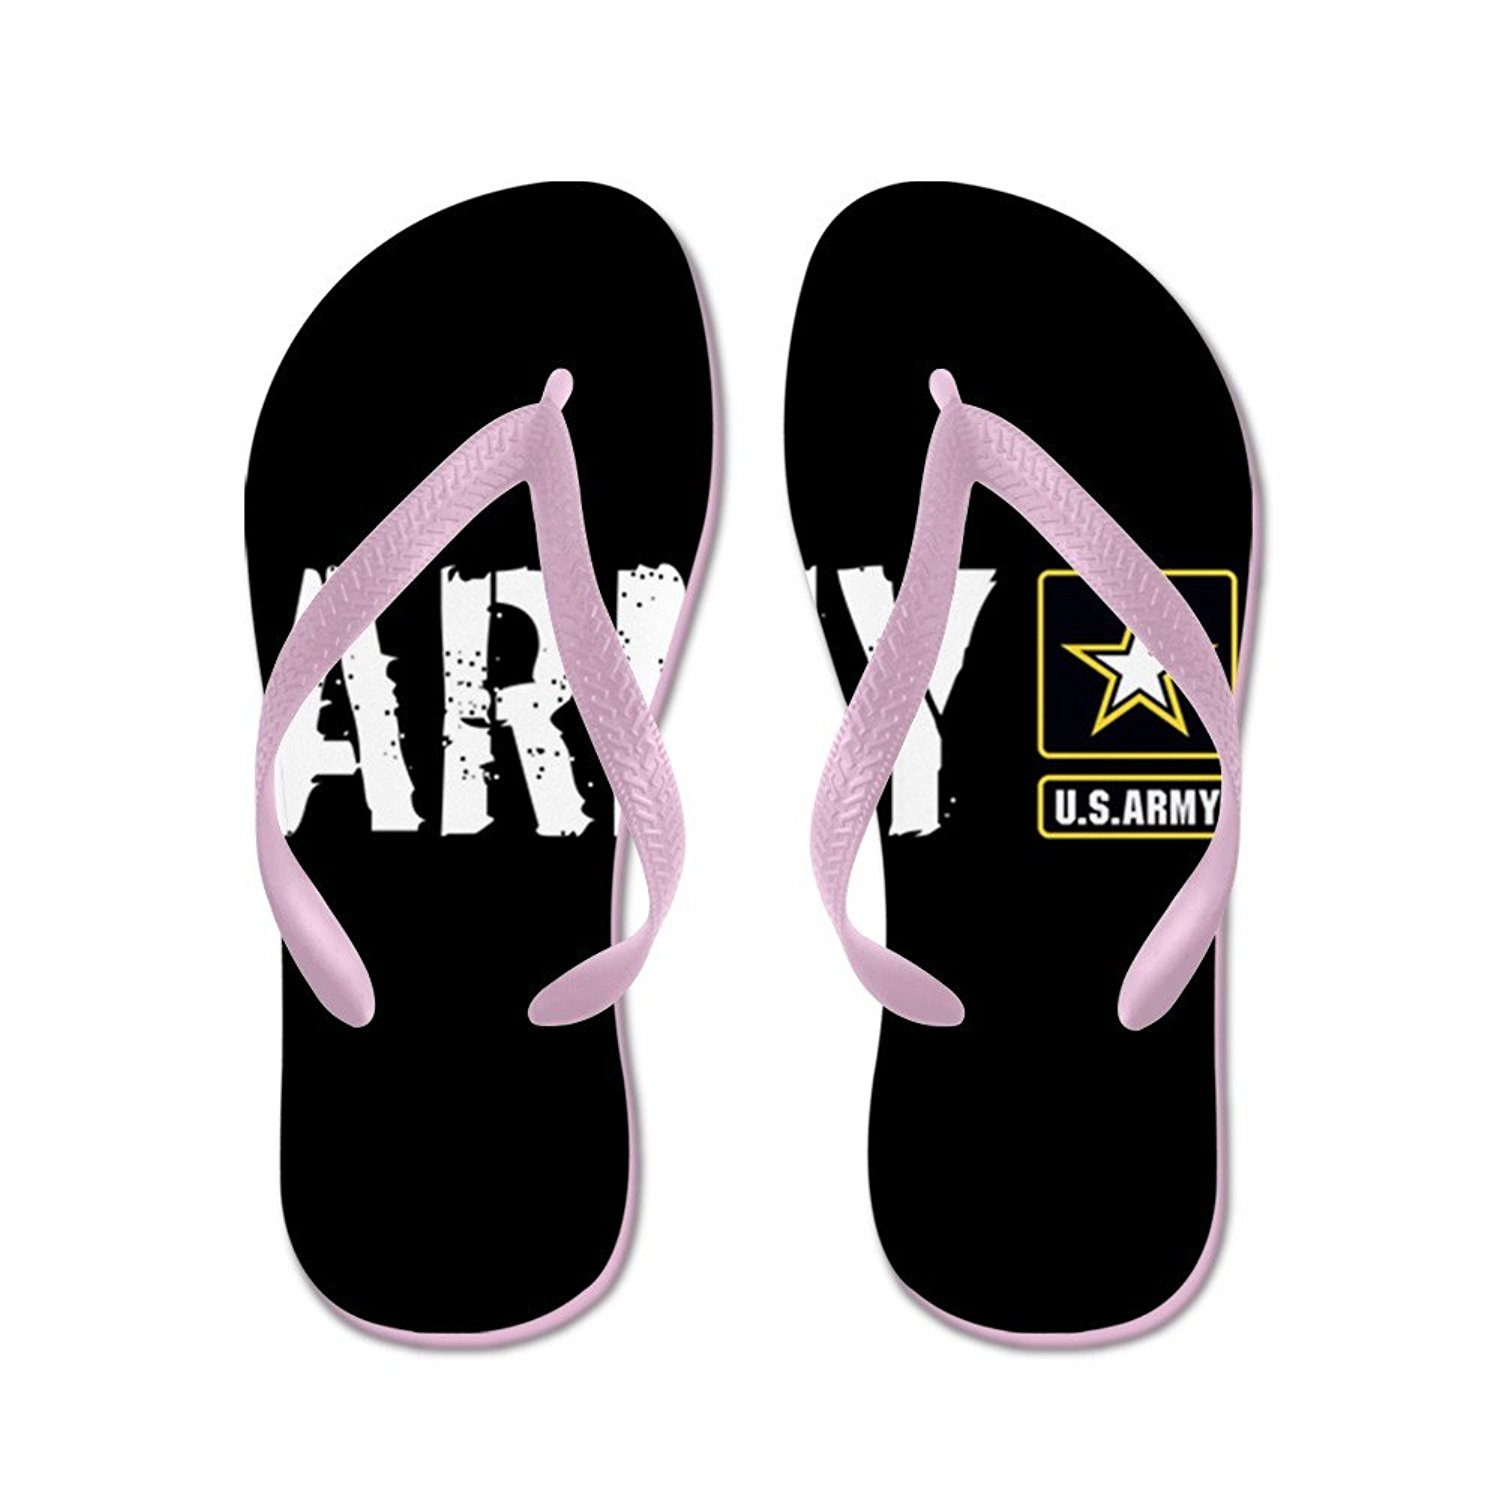 d2a3430200d Get Quotations · CafePress U.S. Army  Army (Black) - Flip Flops